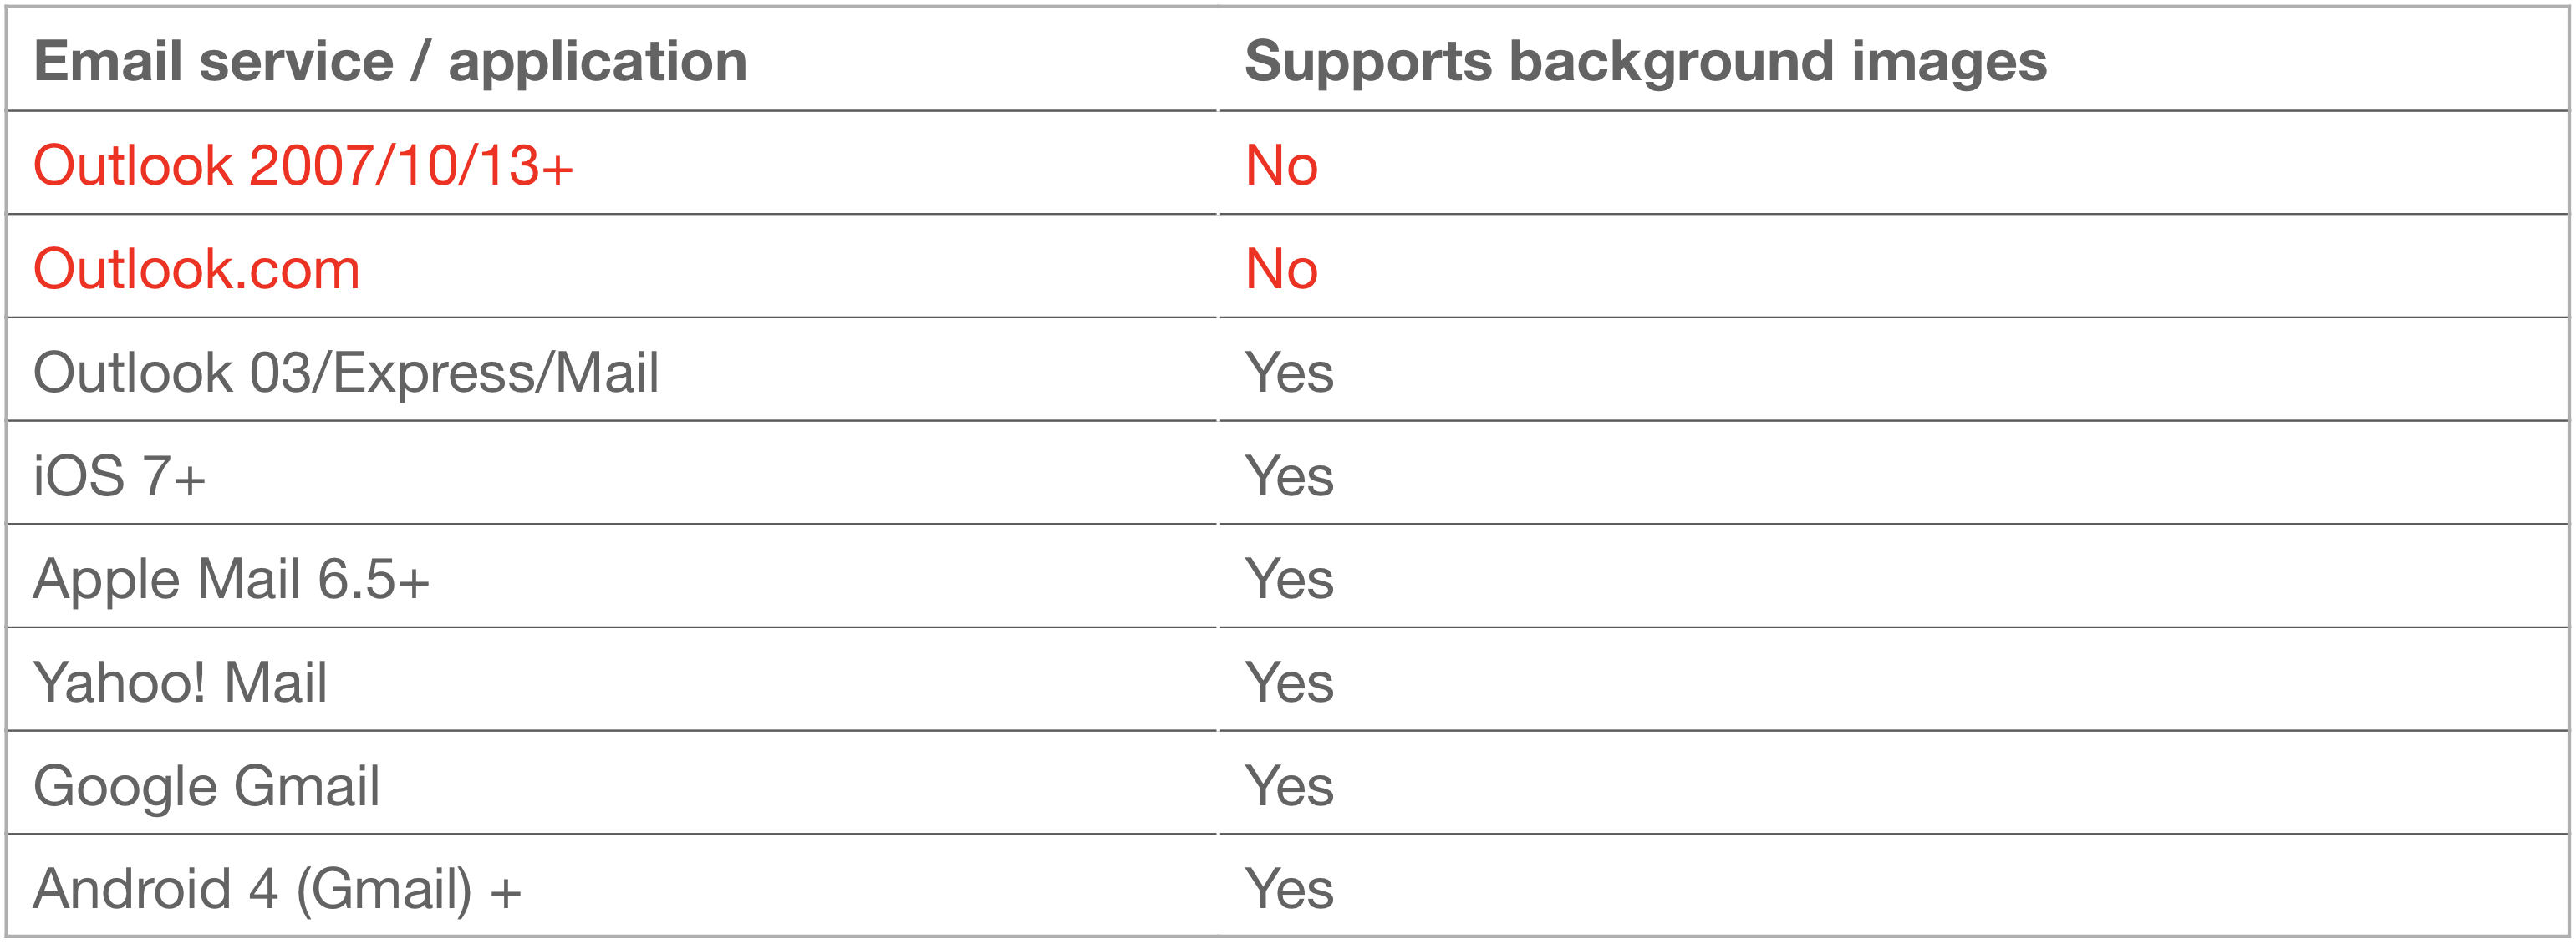 Data of Email Services Supporting Background Images